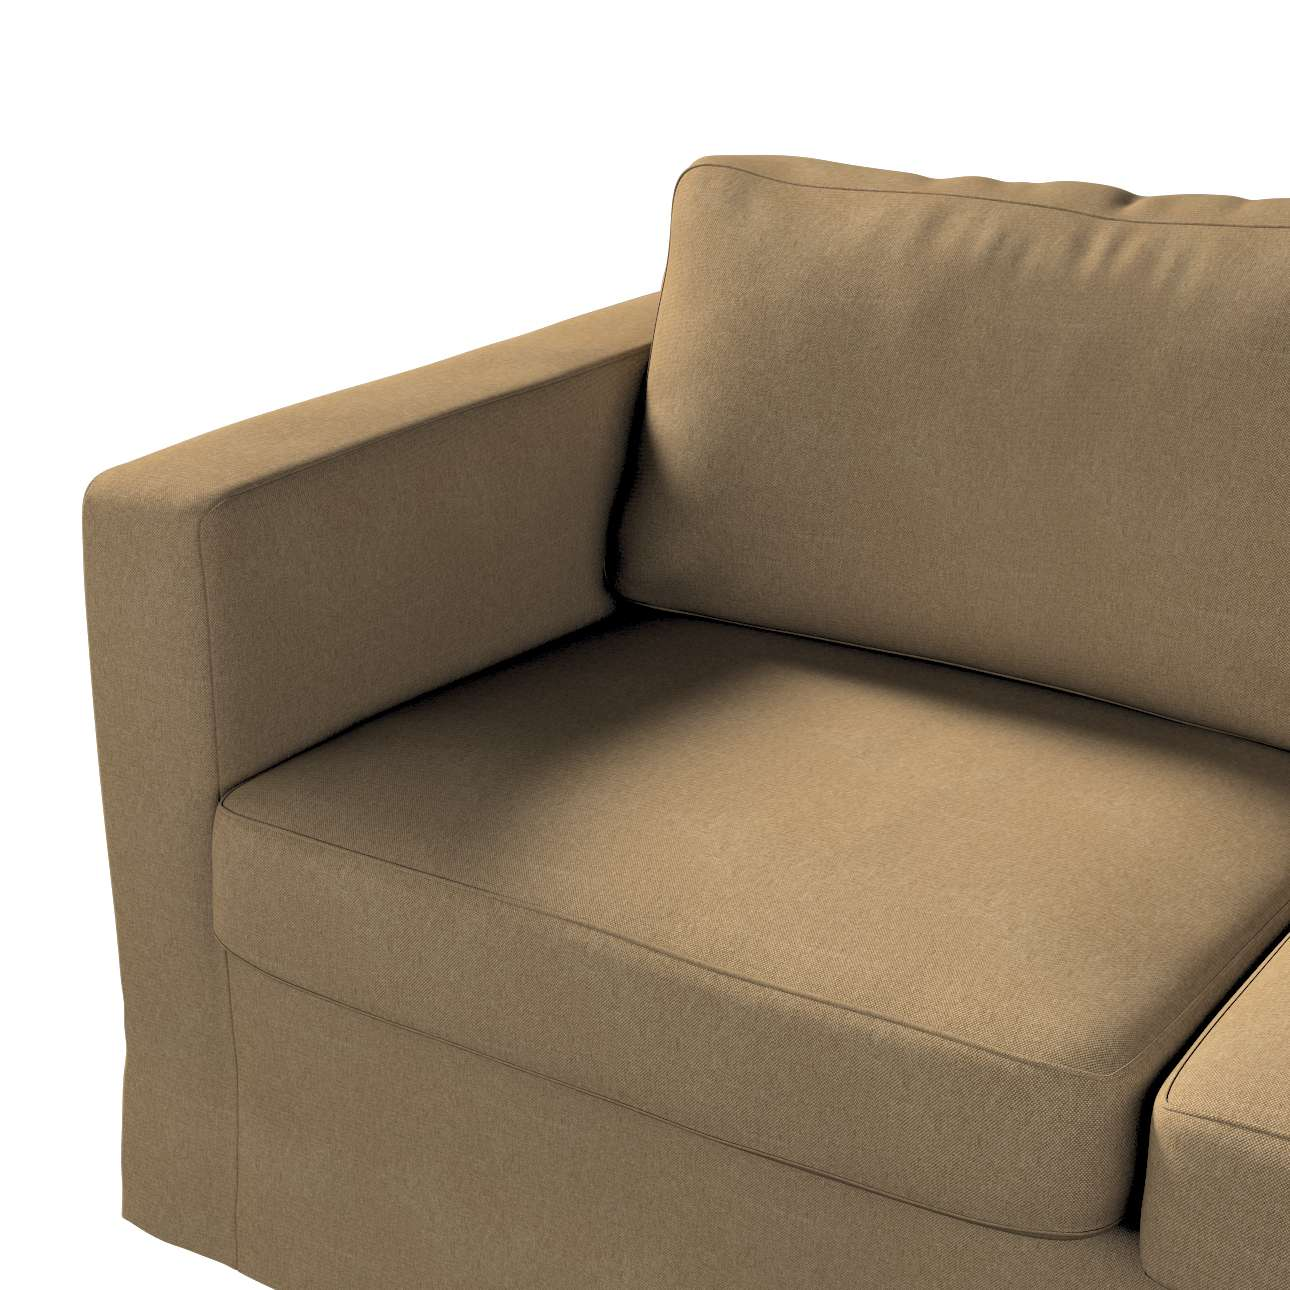 Floor length Karlstad 2-seater sofa cover in collection Etna, fabric: 705-06